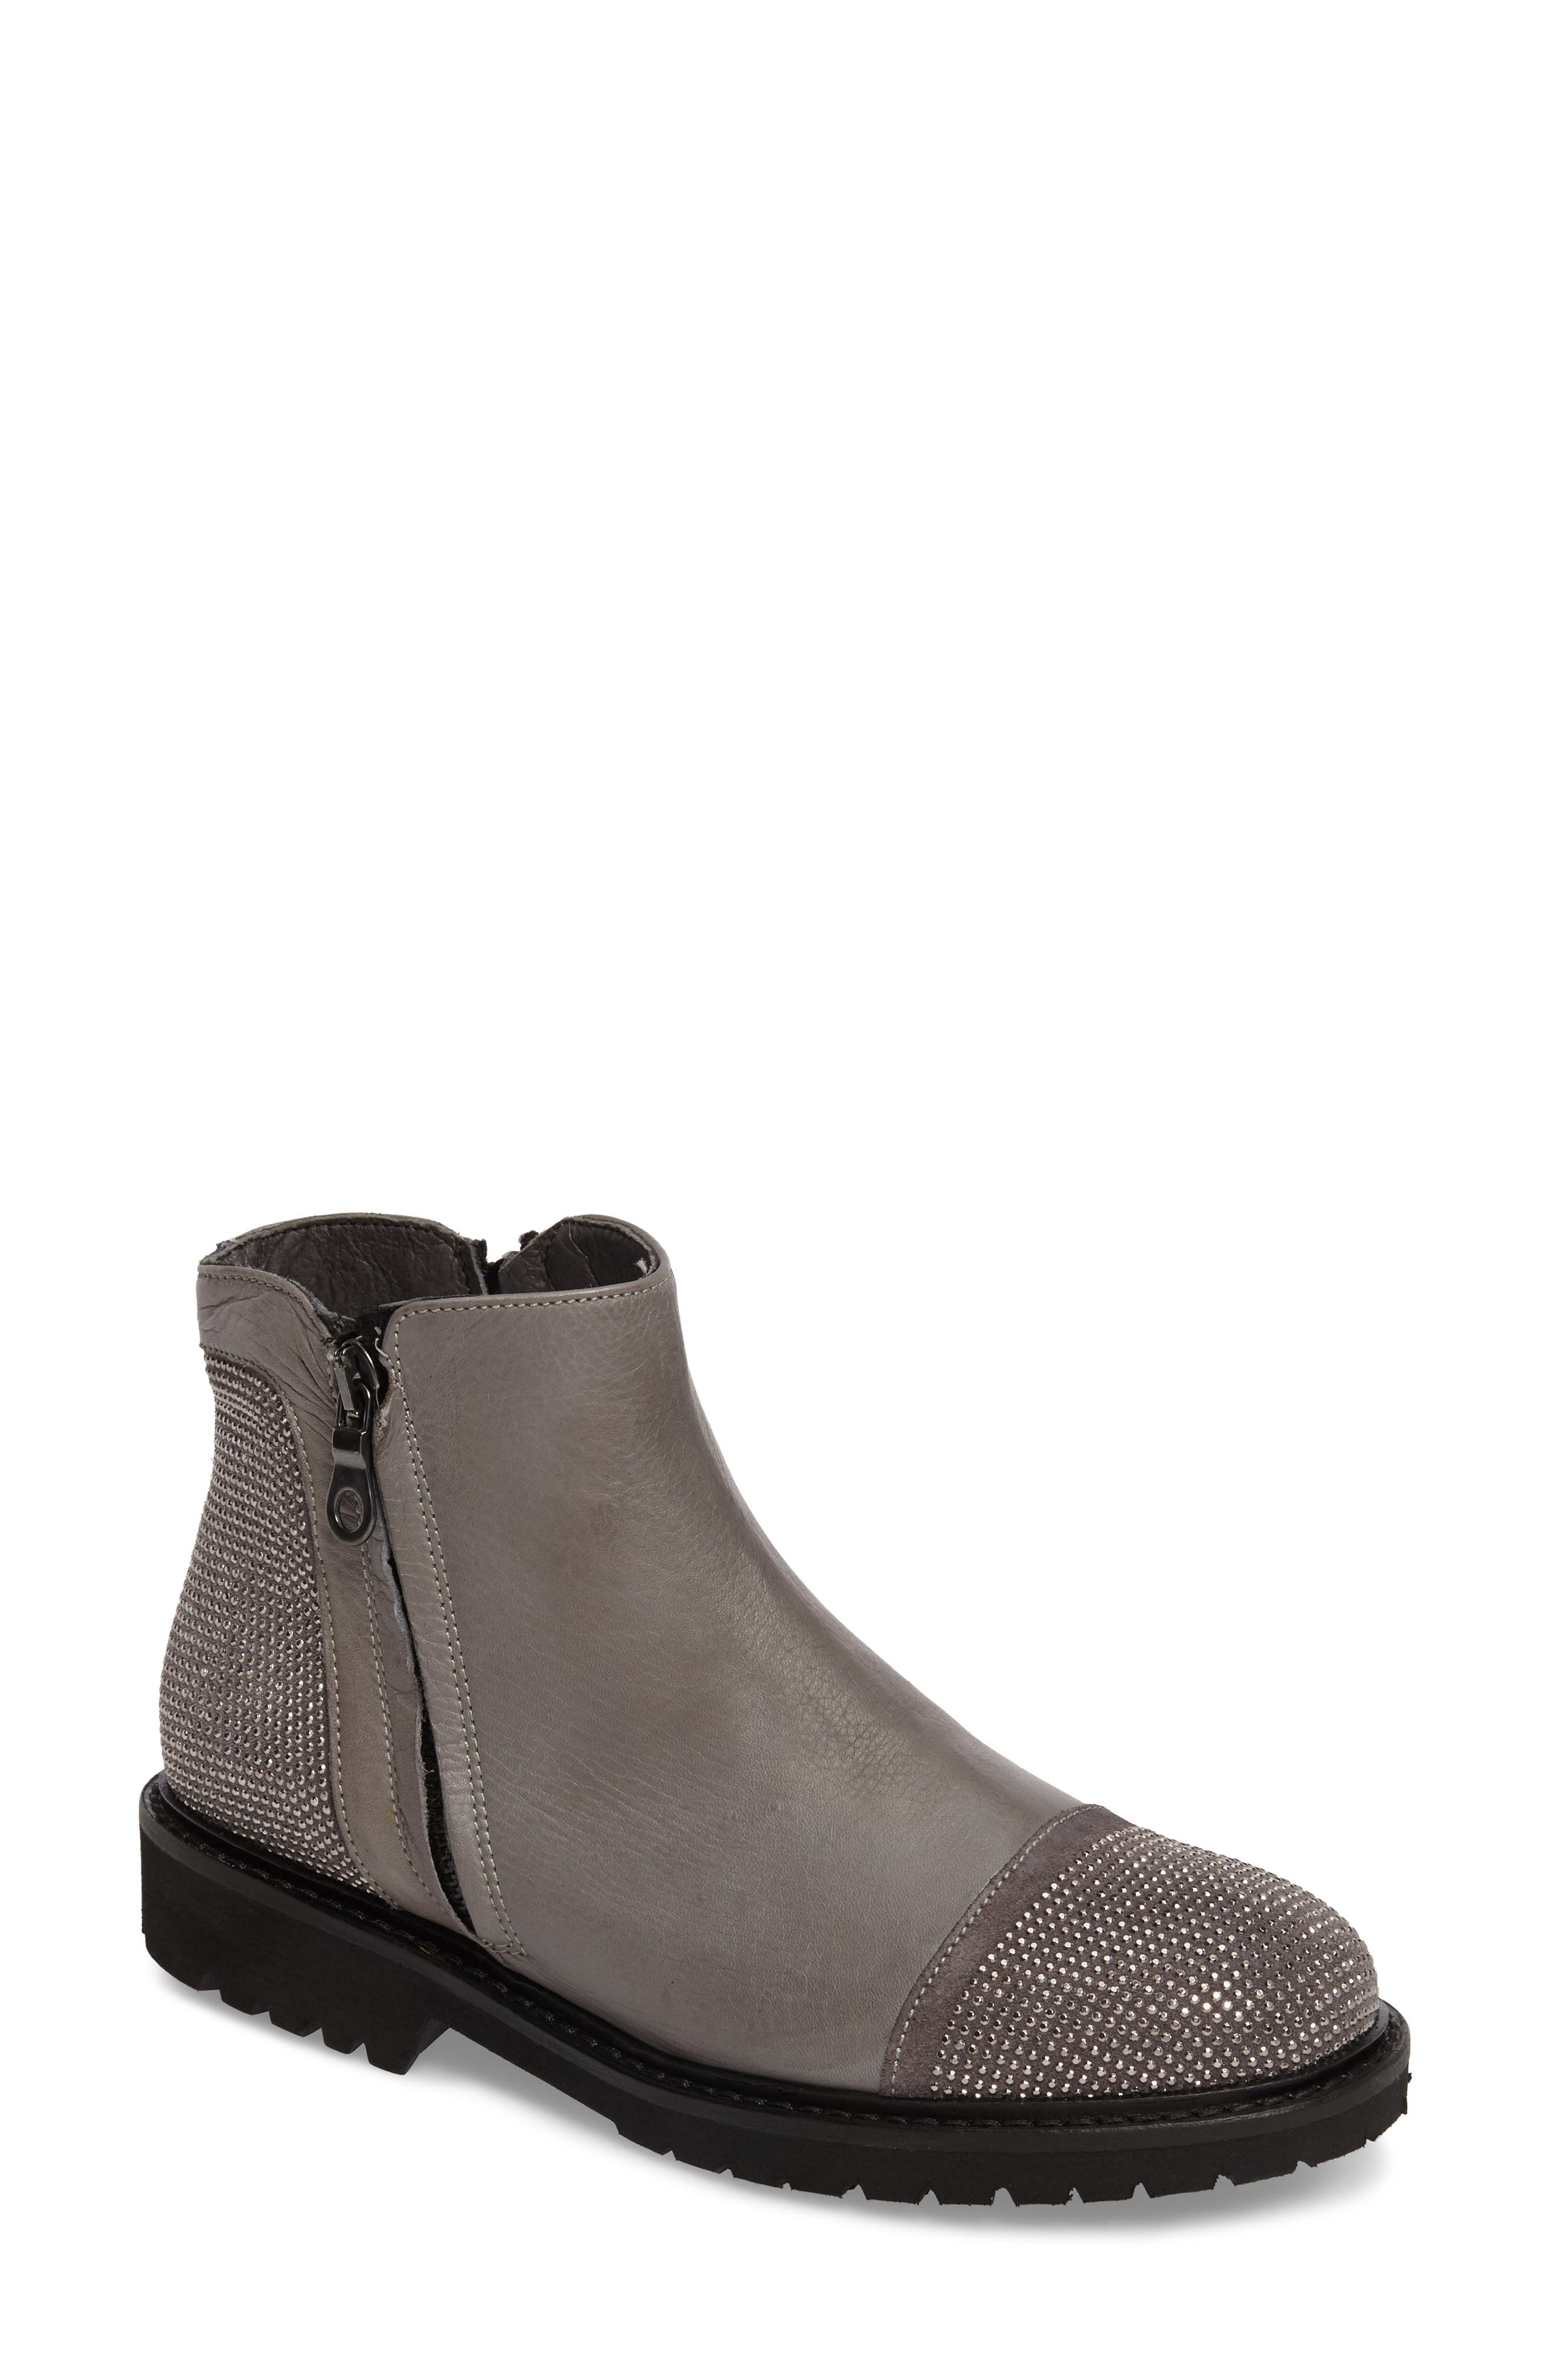 Main Image - Sheridan Mia Viva Ankle Boot (Women)